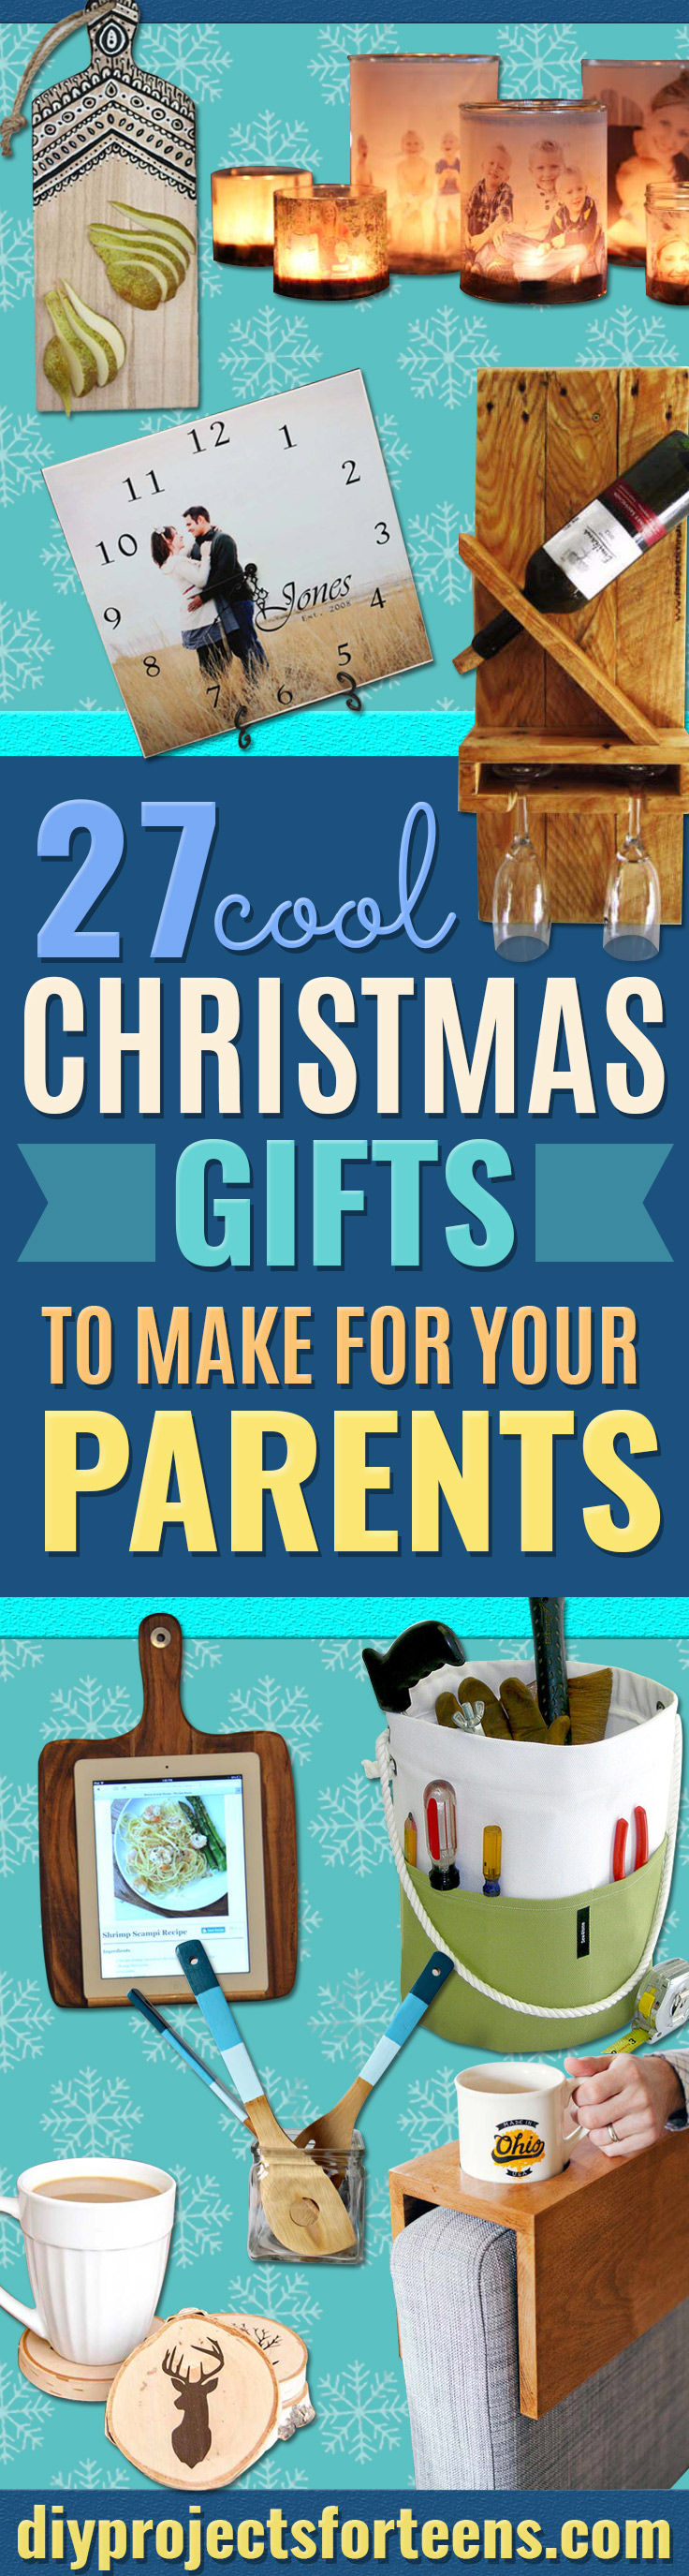 Cool Christmas Gifts To Make For Your Parents - DIY Projects for Teens